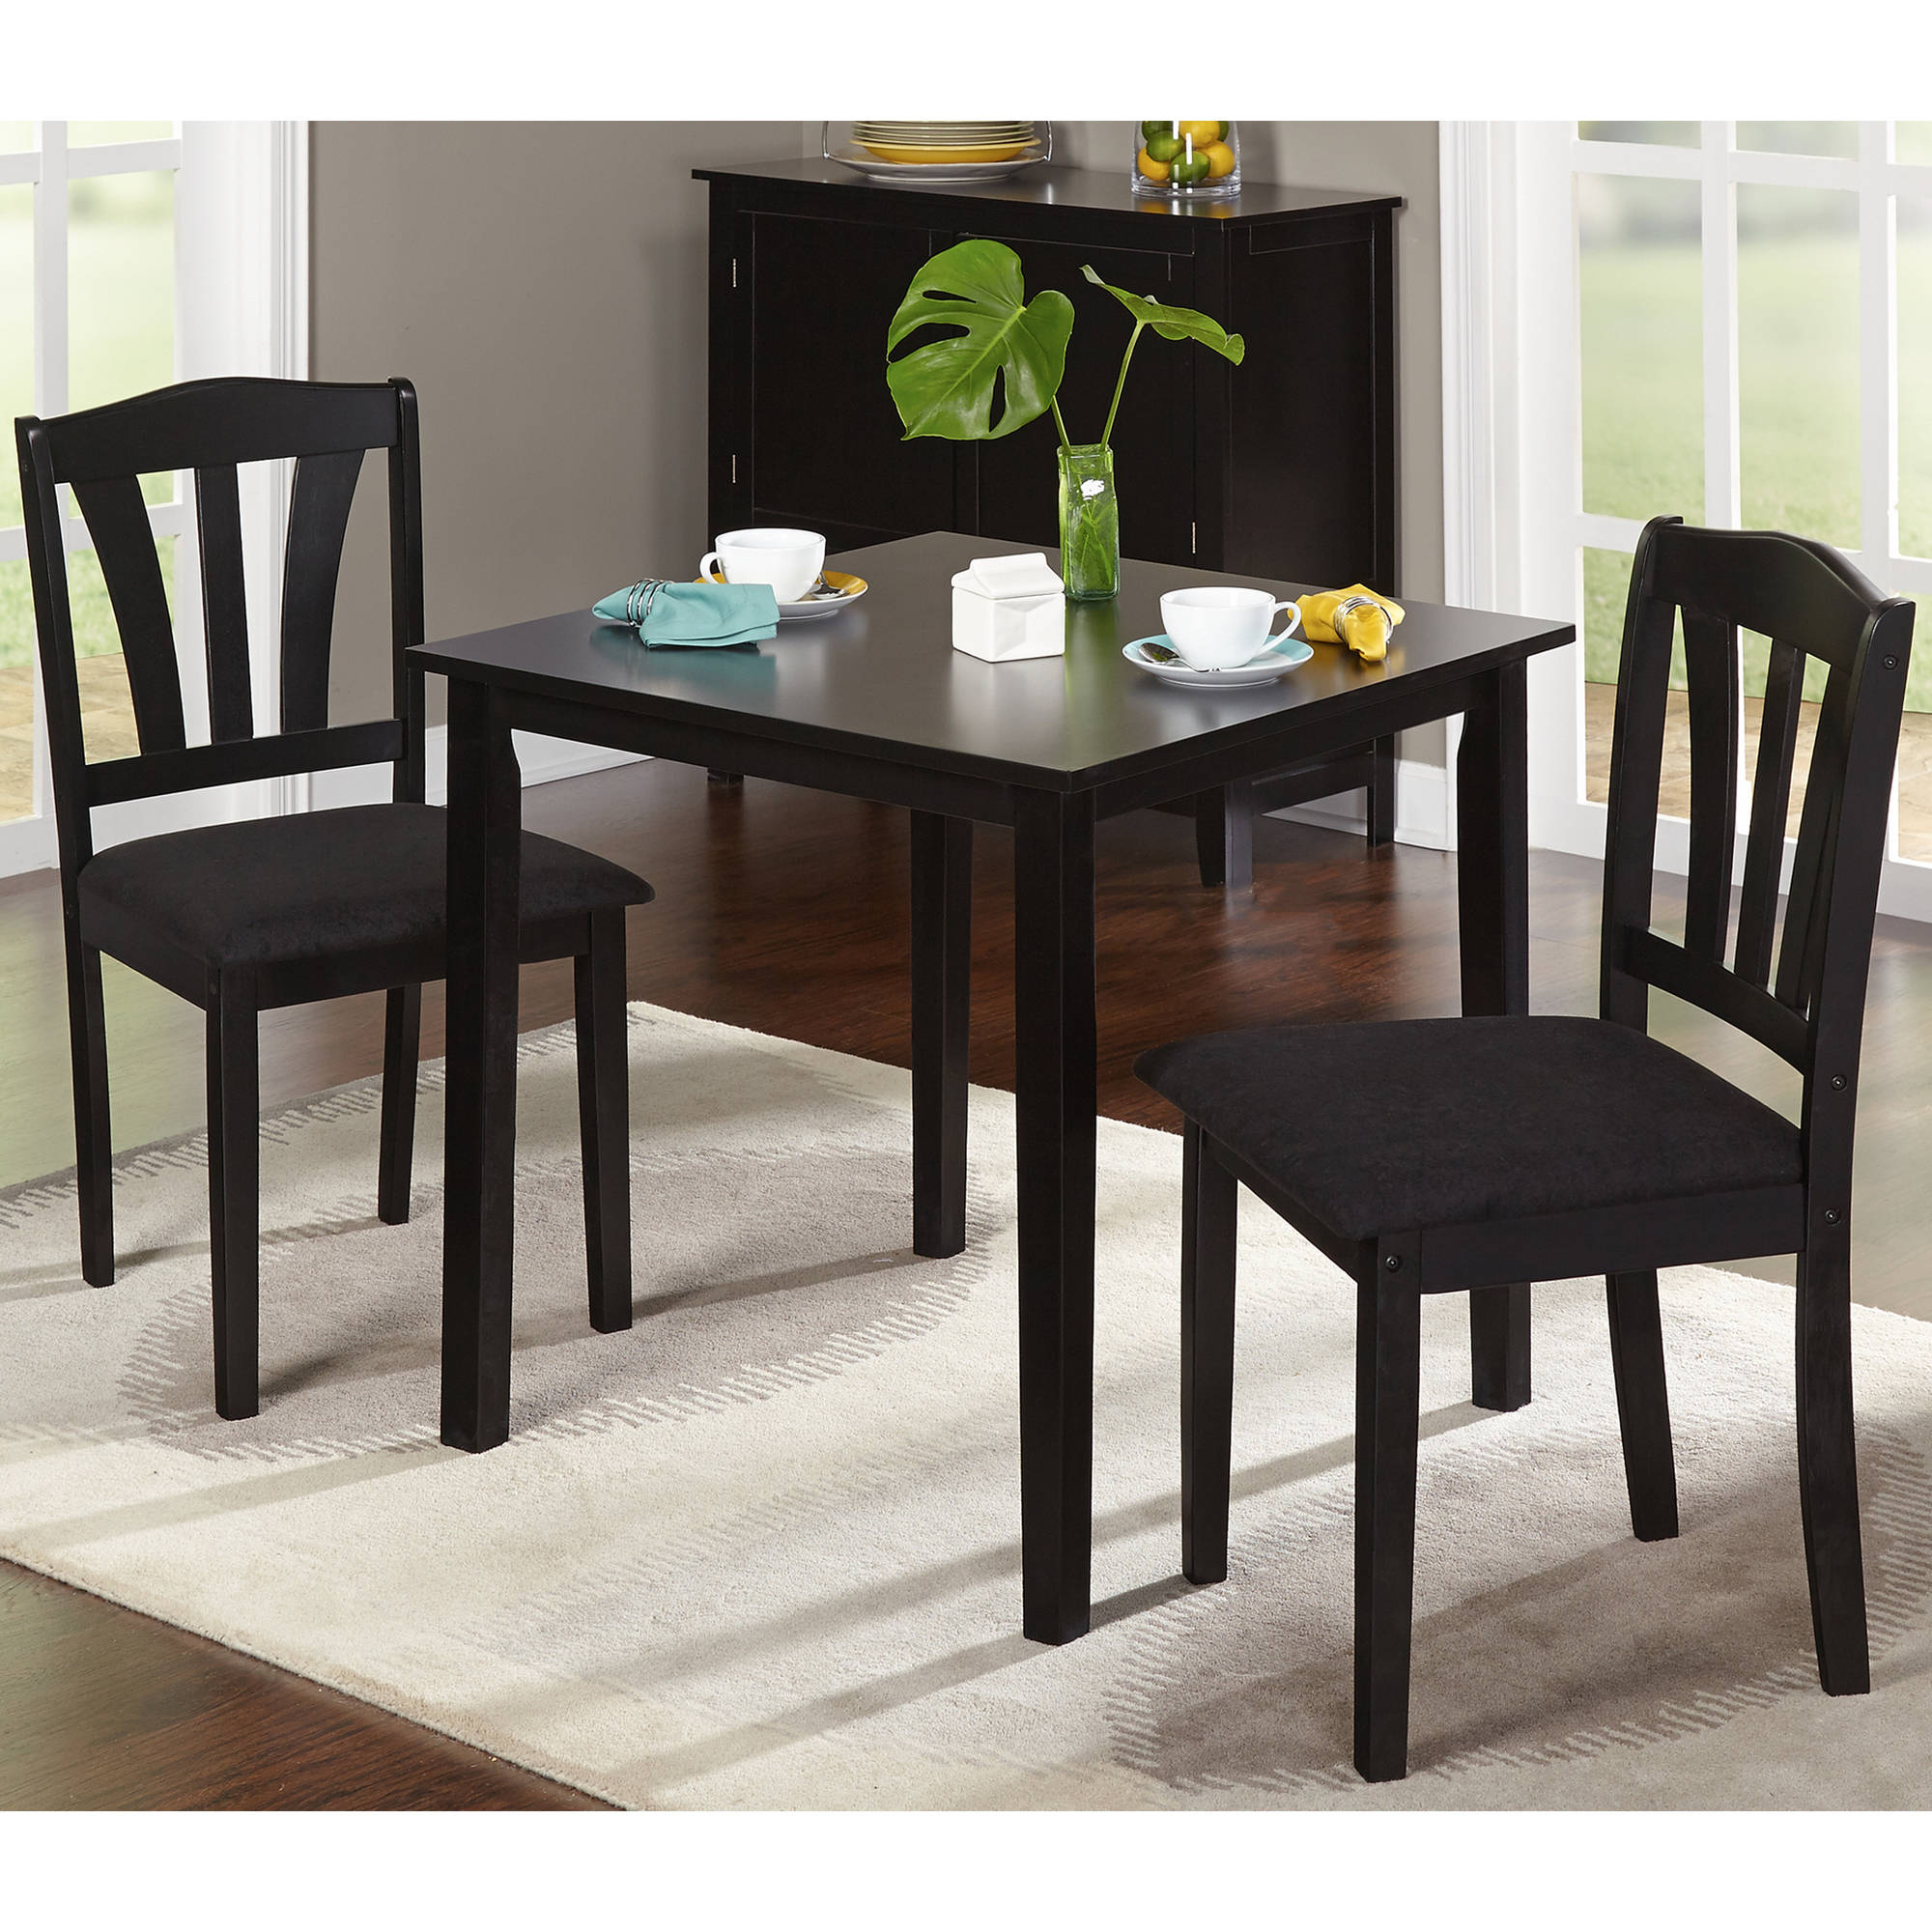 3 piece dining set multiple finishes